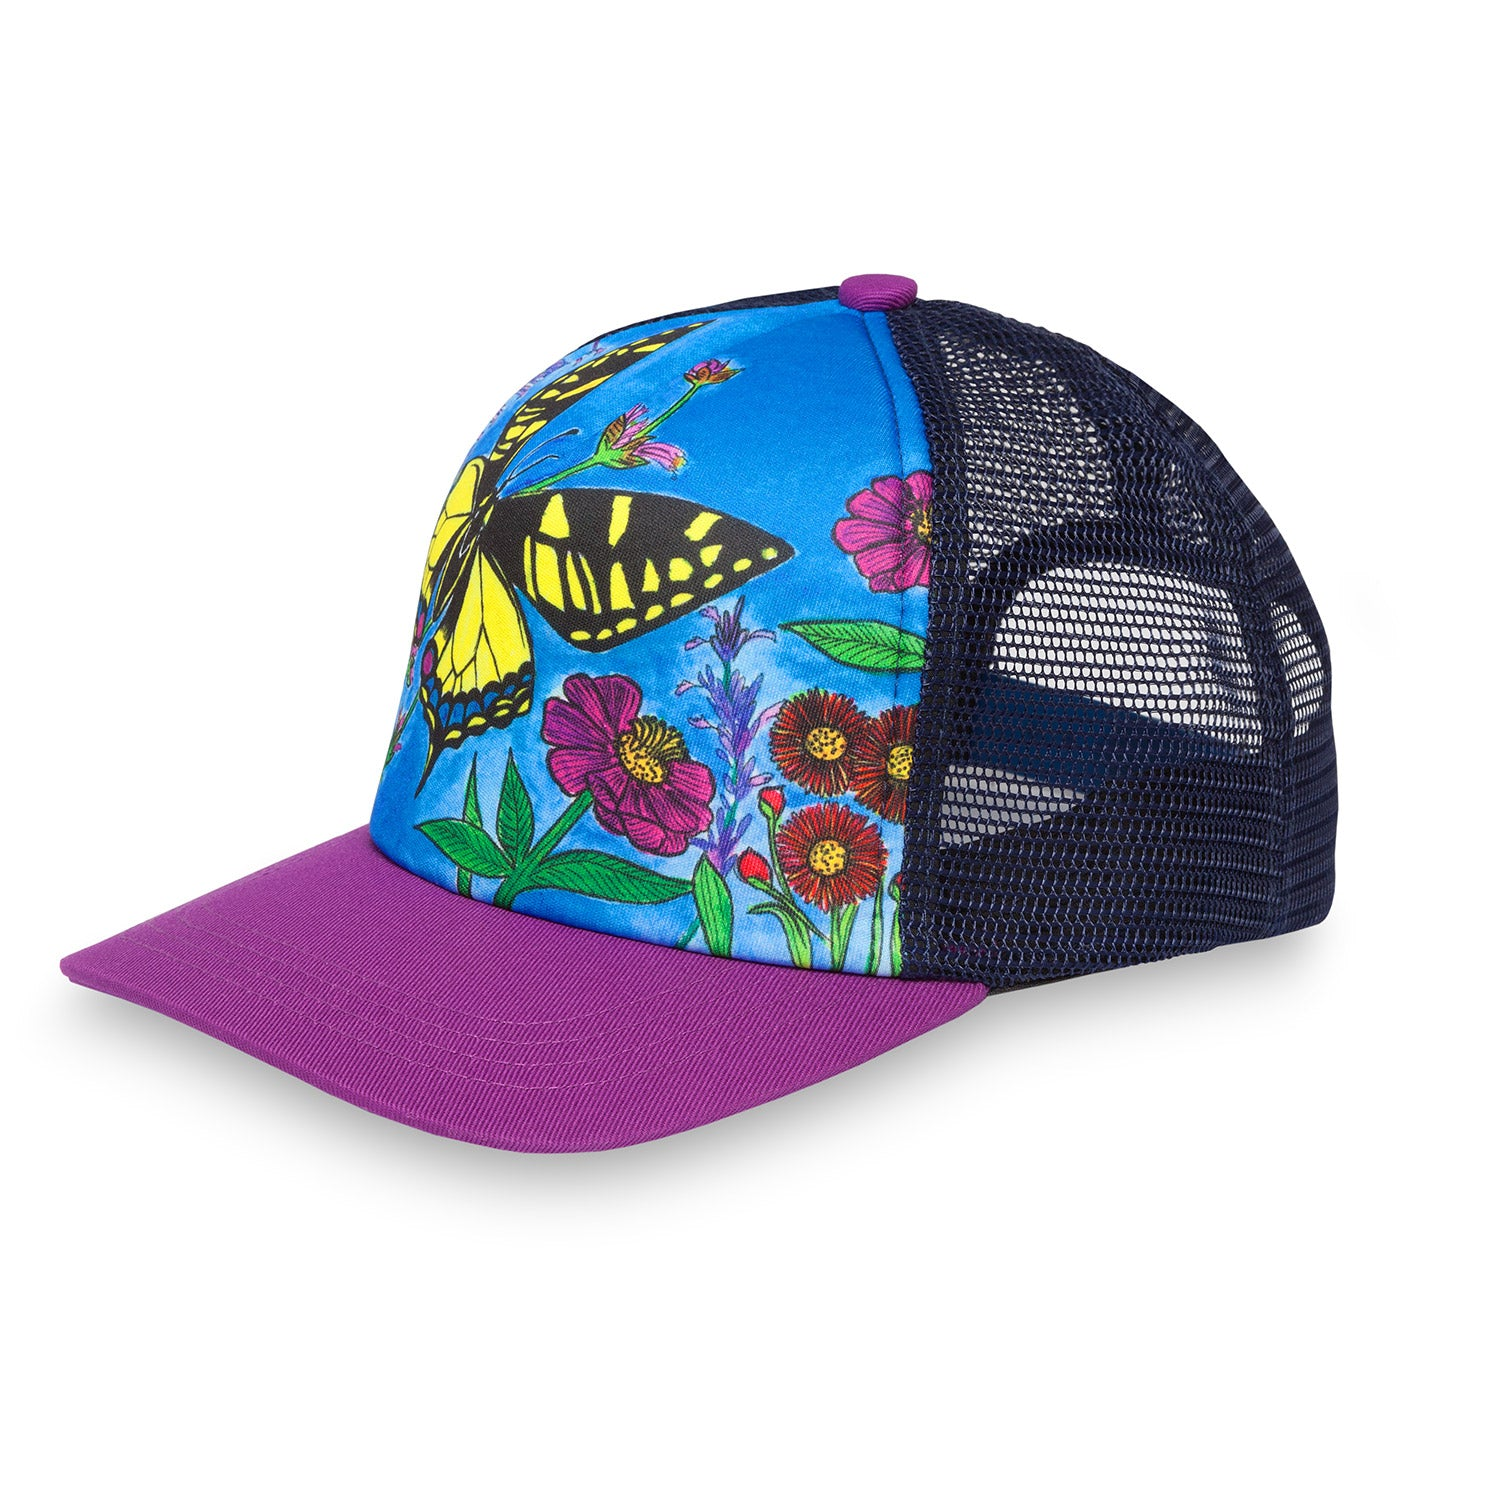 The kid's trucker hat, sideview, with swallowtail butterfly print